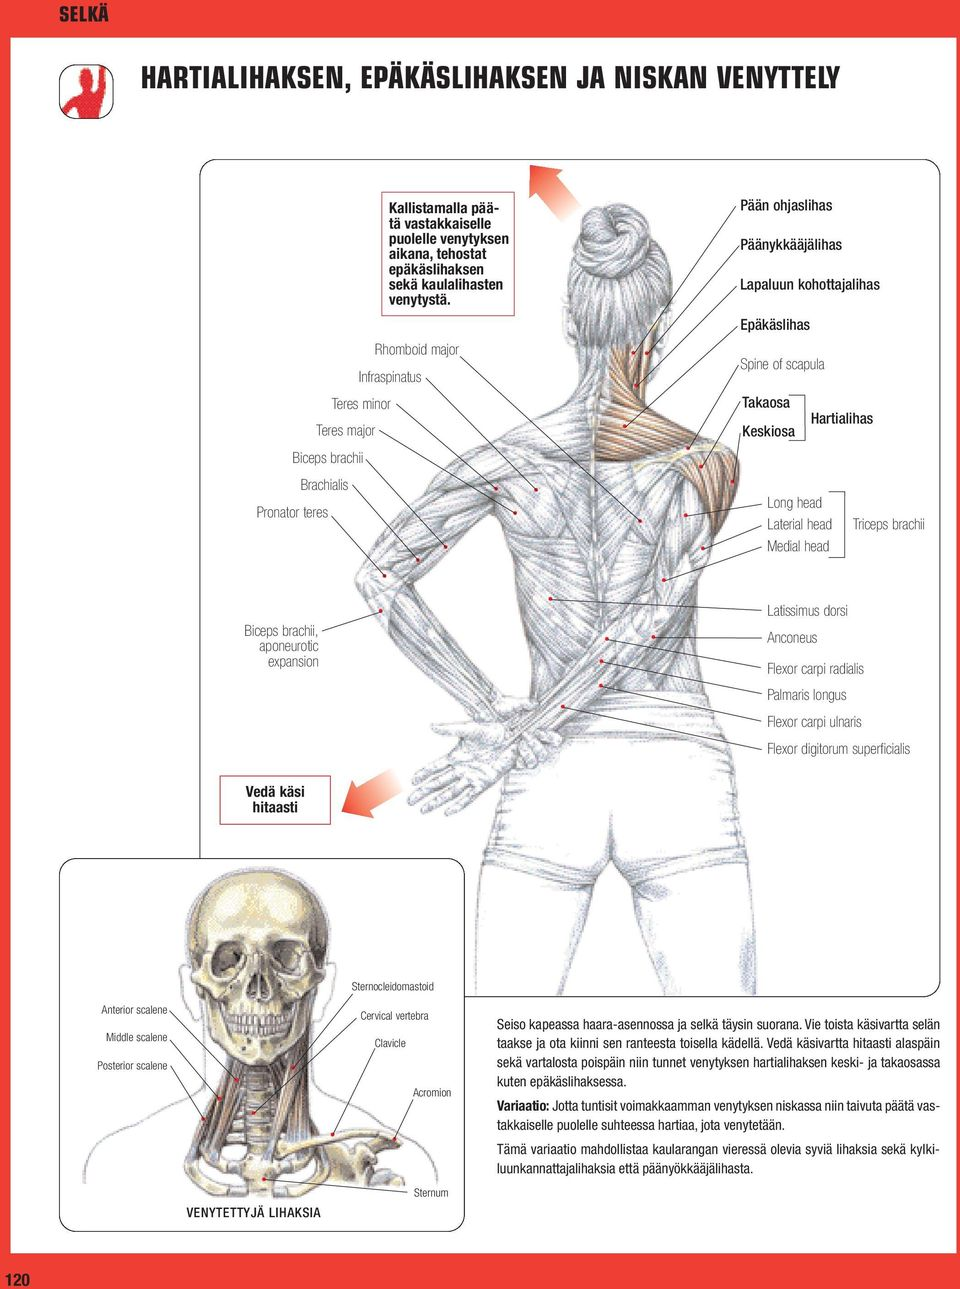 Pään ohjaslihas Päänykkääjälihas Lapaluun kohottajalihas Epäkäslihas Spine of scapula Takaosa Keskiosa Long head Laterial head Medial head Hartialihas Triceps brachii Biceps brachii, aponeurotic